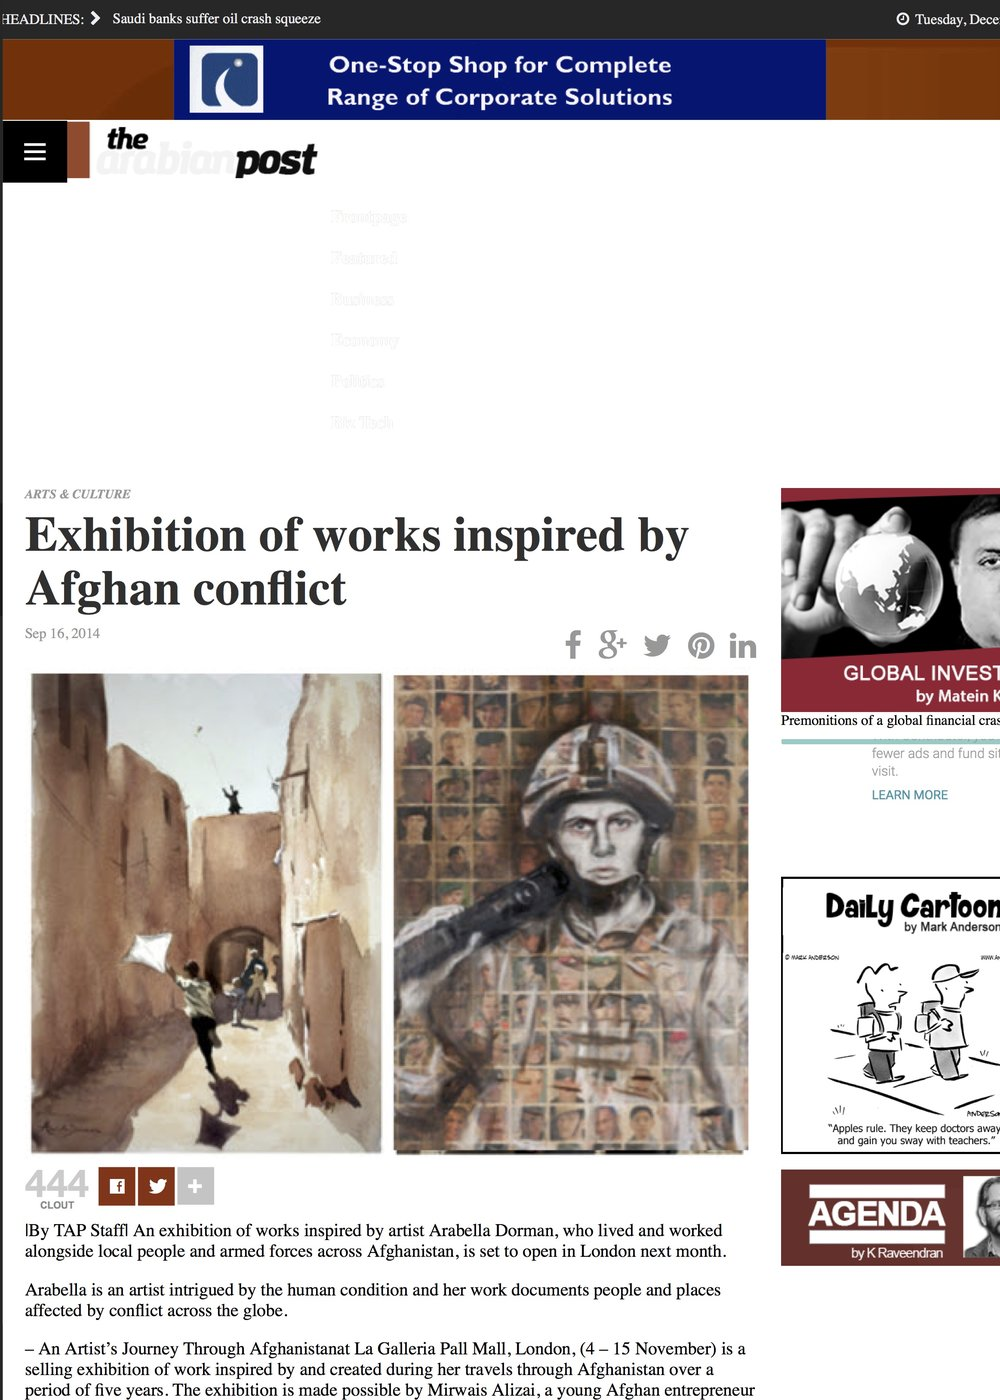 Exhibition of works inspired by Afghan conflict - The Arabian Post.jpg